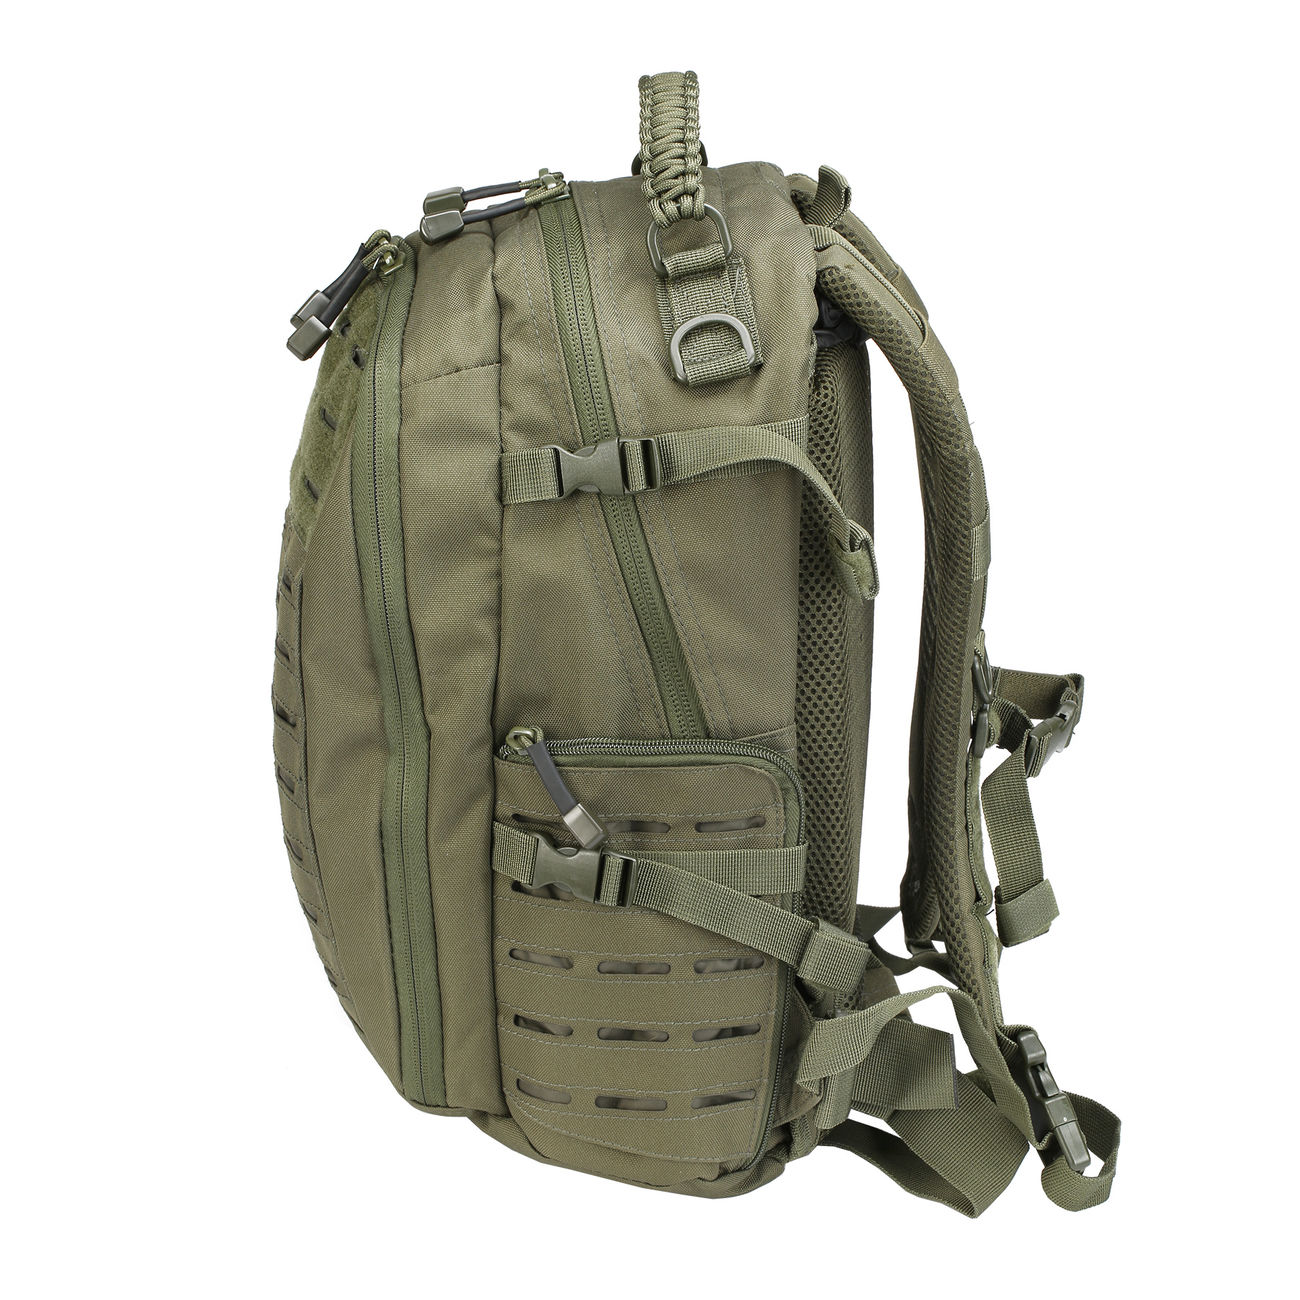 Mil-Tec Rucksack Mission Pack Laser Cut Small oliv 4